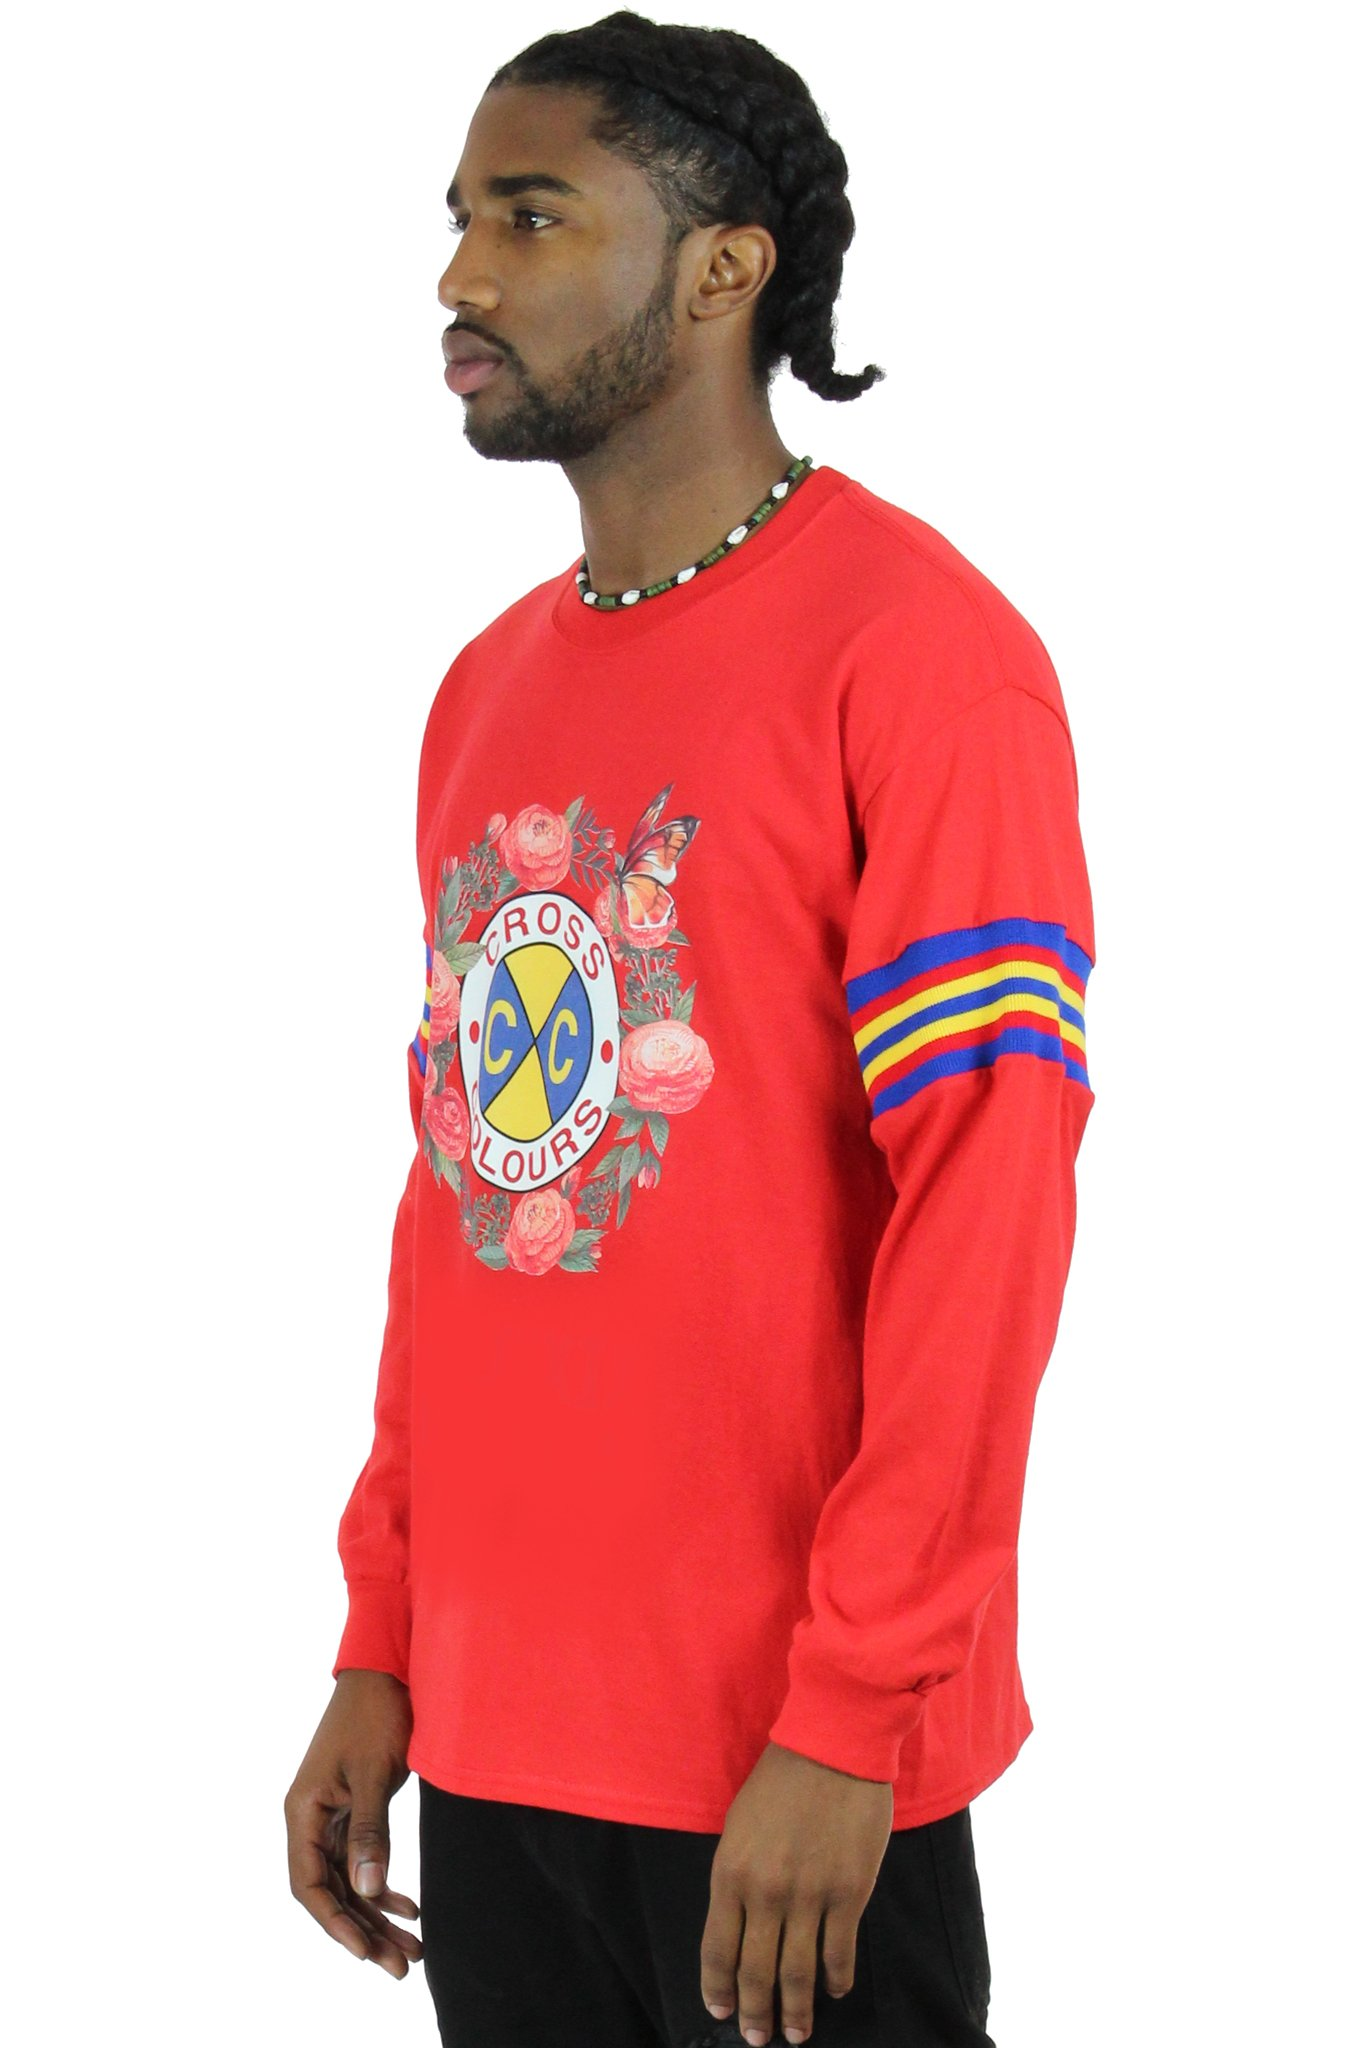 Cross_Colours_Rose_Logo_LS_TShirt_With_Stripe_Sleeves__Red